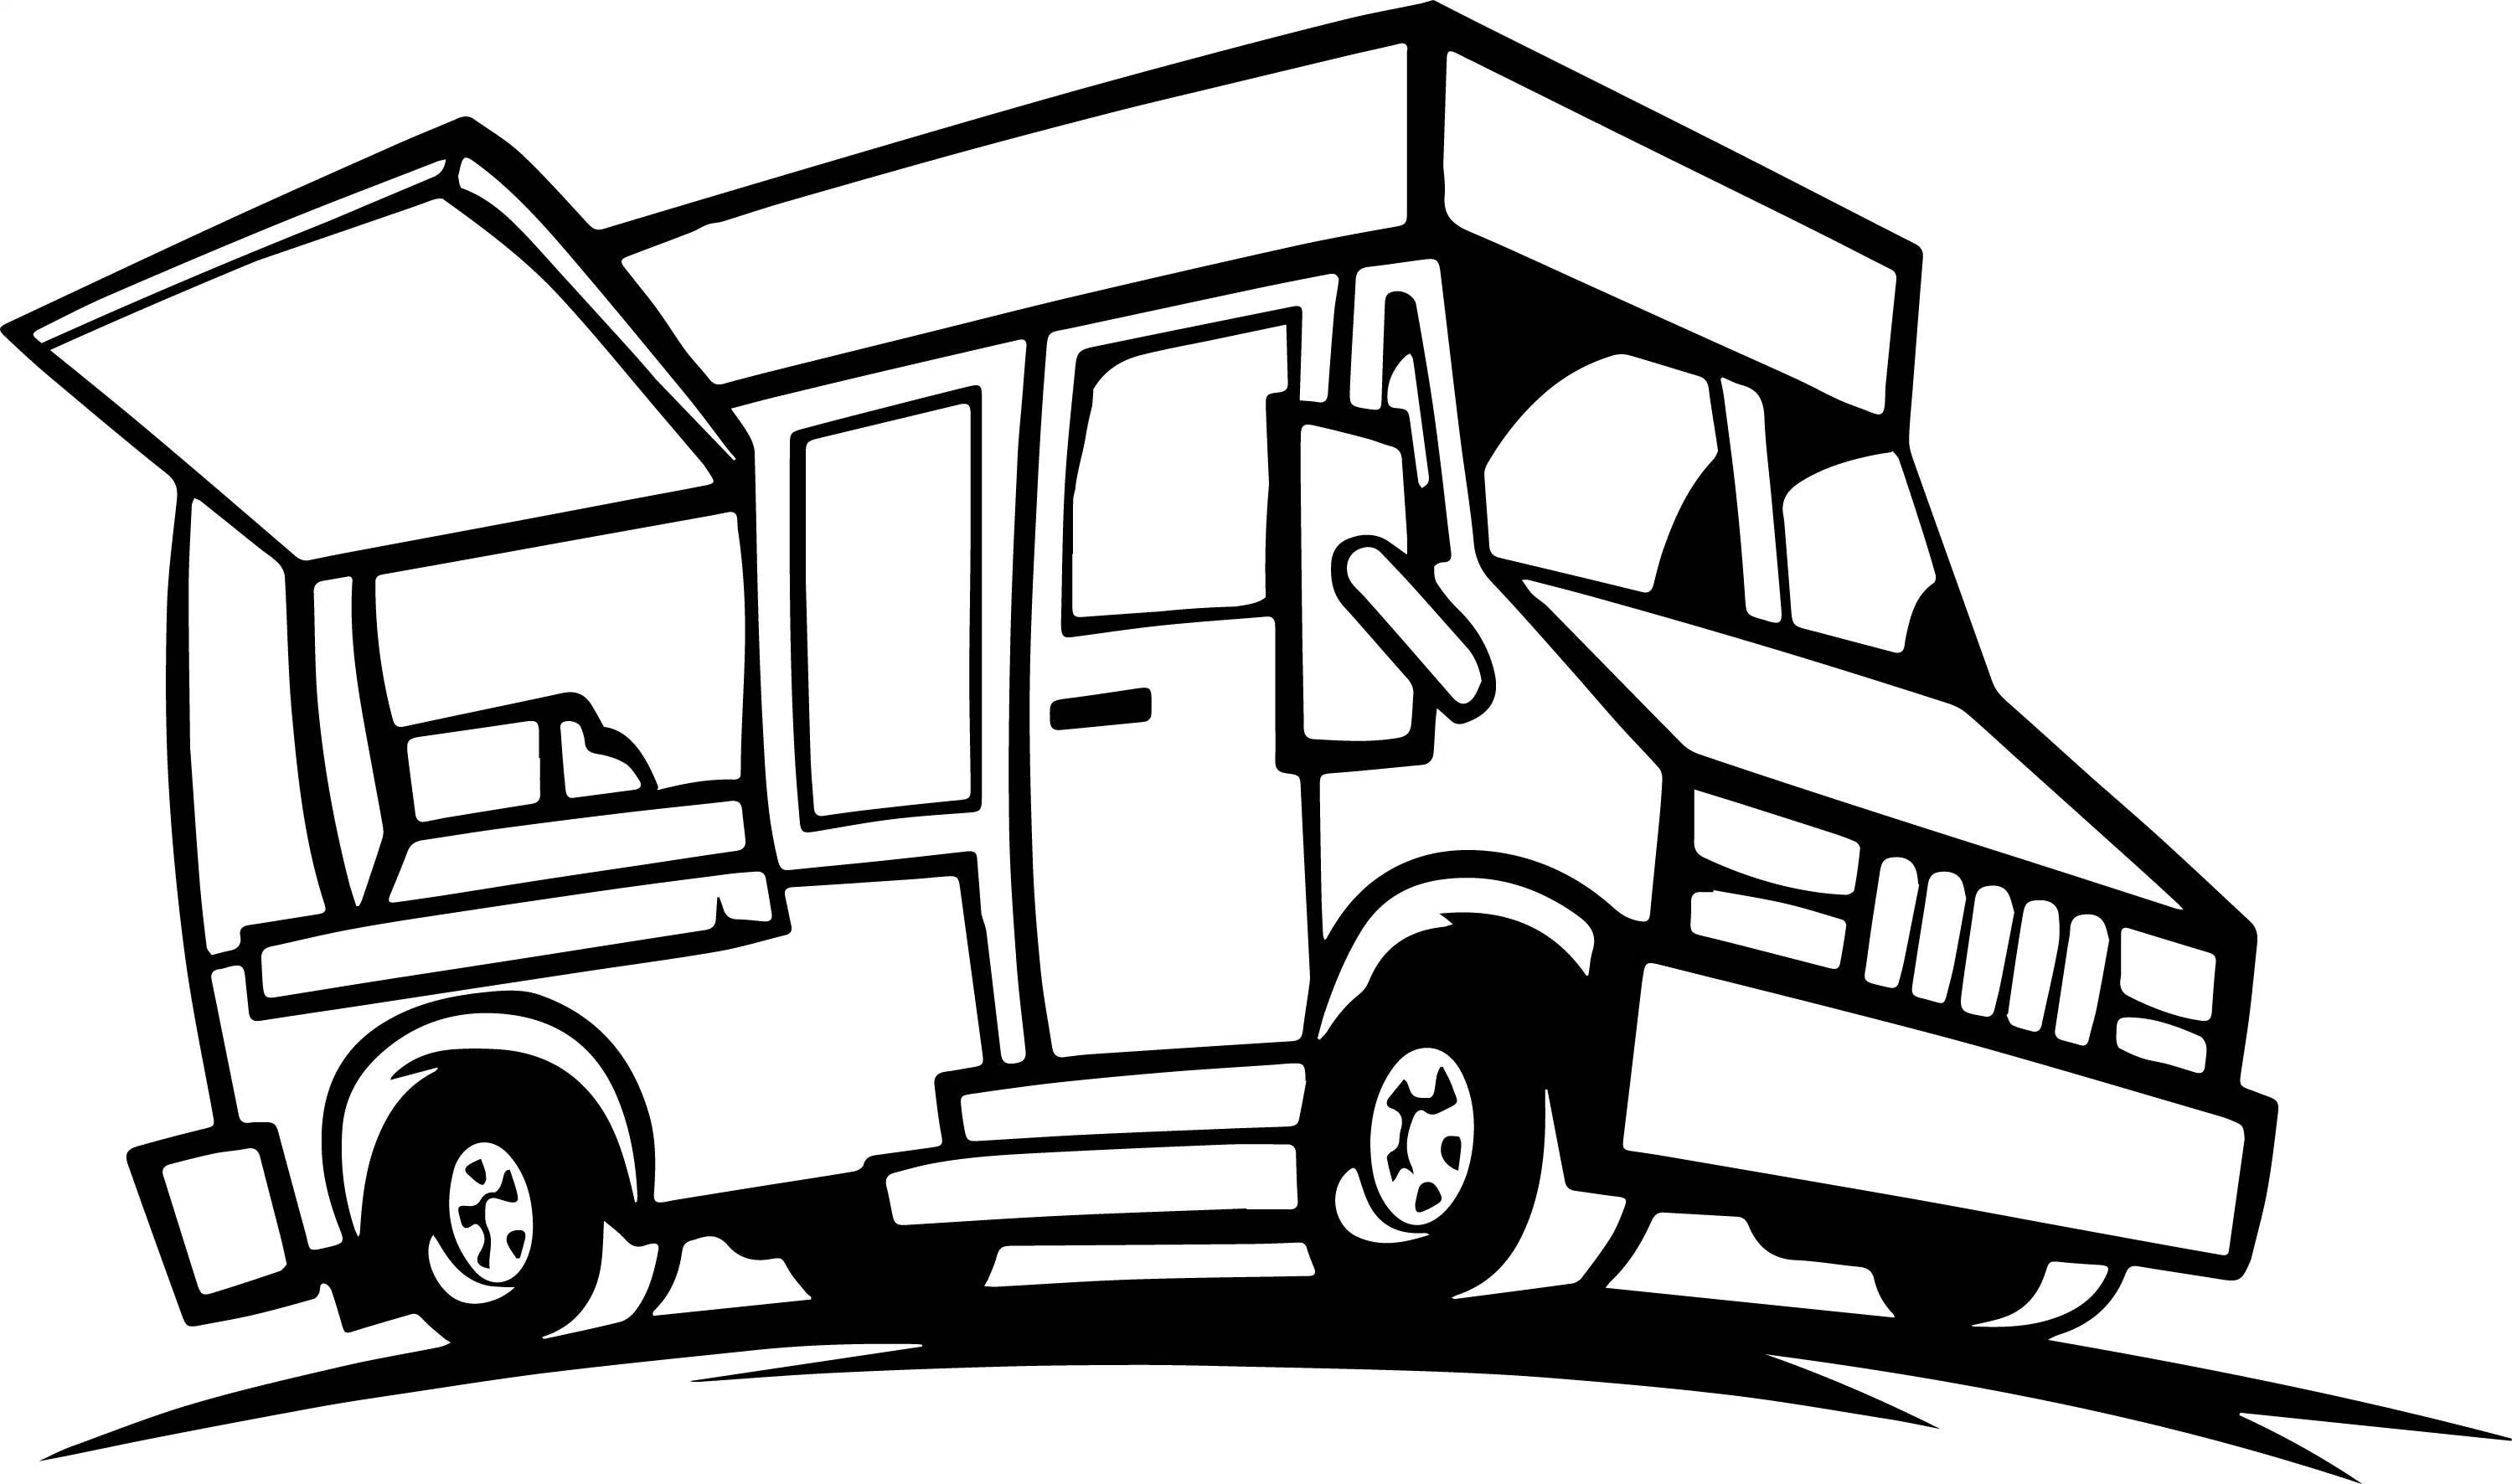 horse trailer coloring pages trailer truck coloring pages at getdrawings free download trailer pages coloring horse